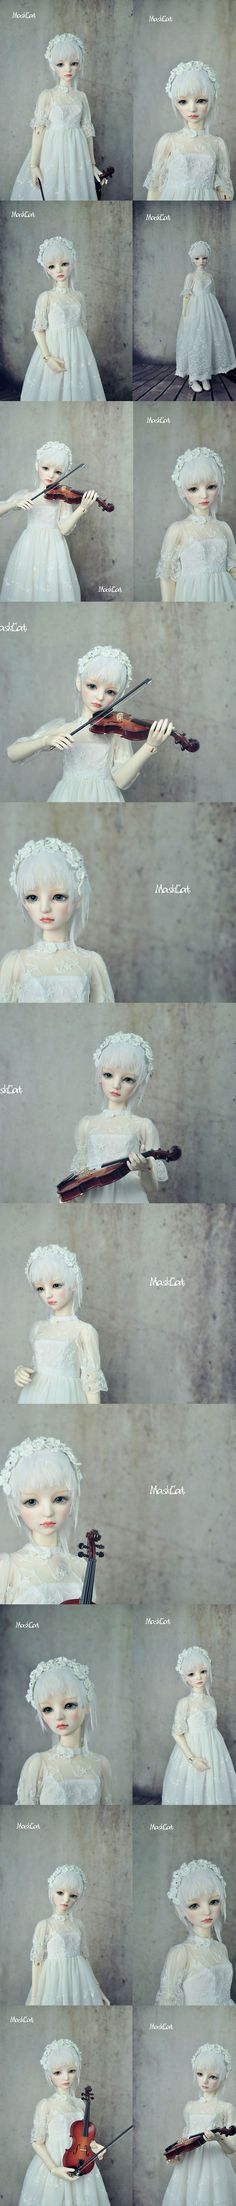 BJD Melodie 57cm Girl Ball-jointed Doll_SD size doll_Maskcat Doll_DOLL_Ball Jointed Dolls (BJD) company-Legenddoll